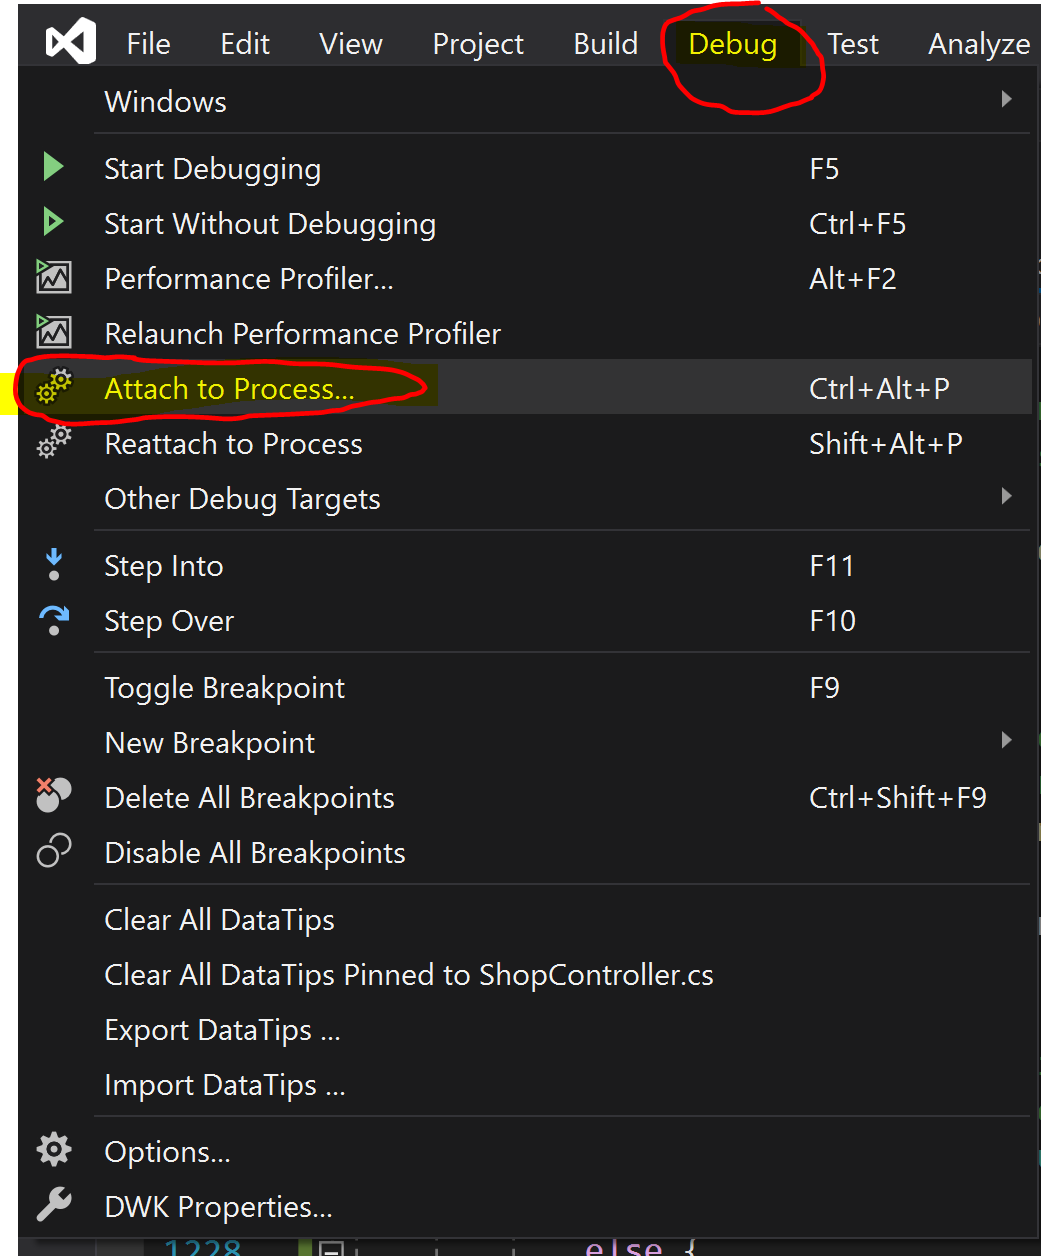 How to Attache to Process Application Running in IIS from Visual Studio 2019